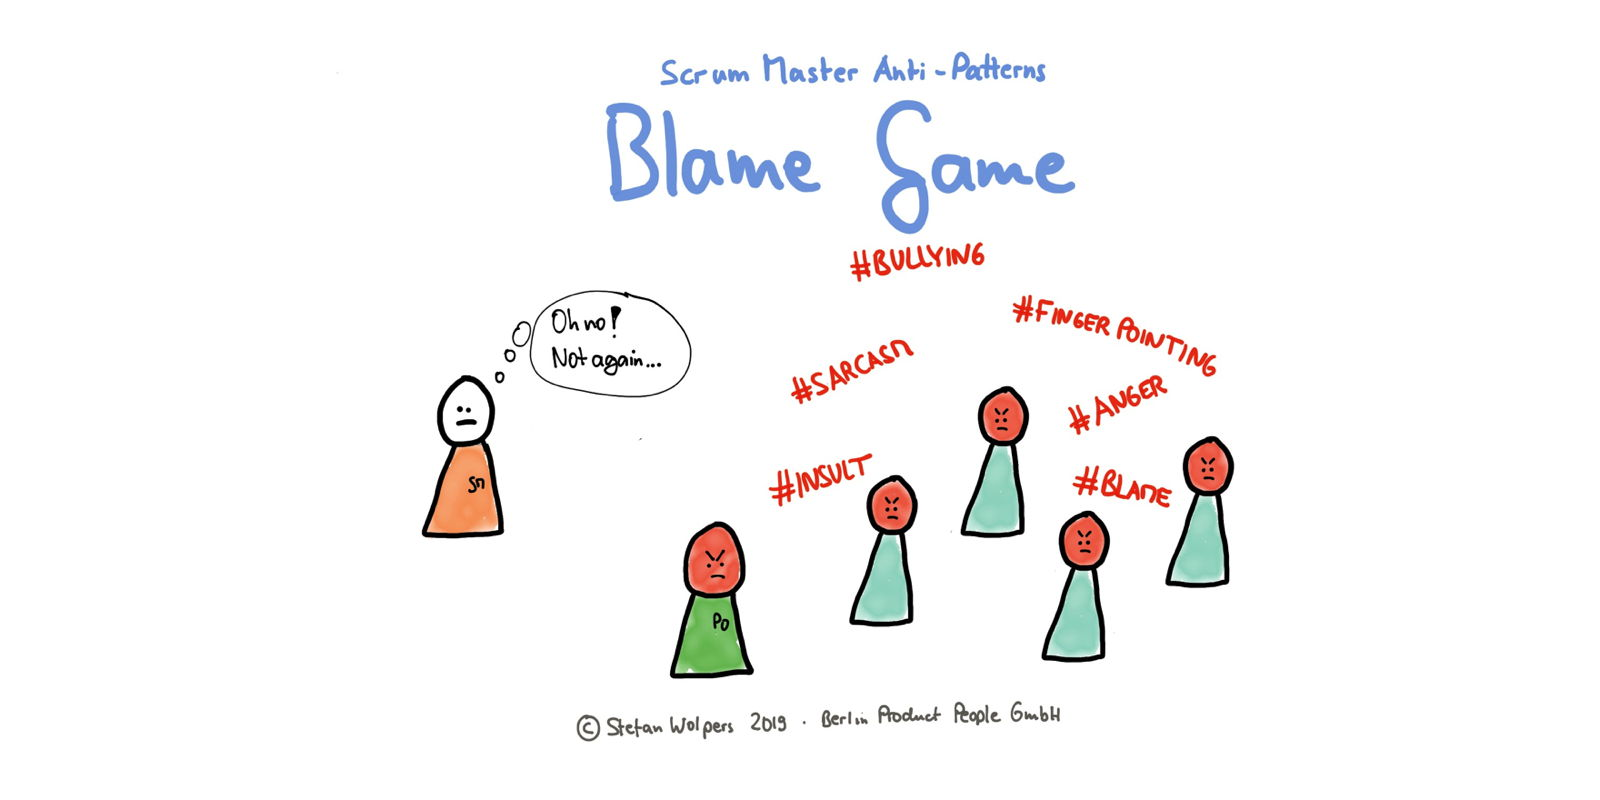 Scrum Master Anti-Patterns — Blame Game